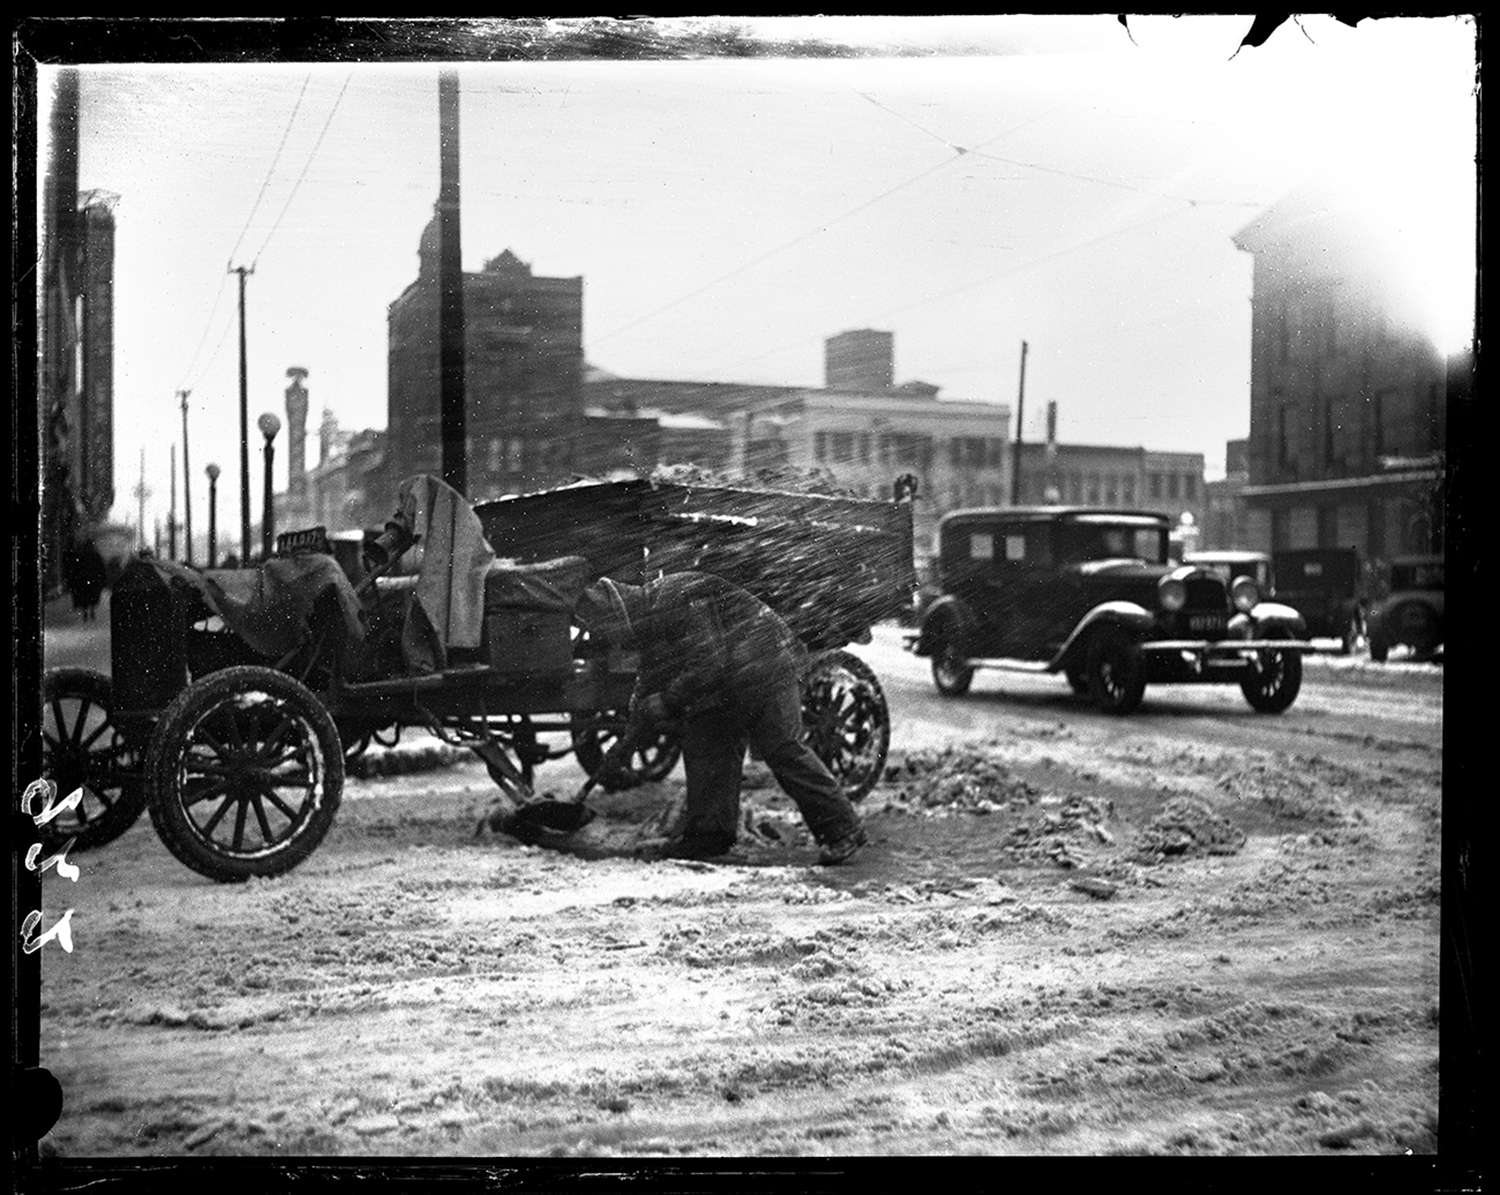 Fifty men from the Springfield city street department helped clear a 6-inch snowfall by hand from downtown intersections, March 6, 1931. This intersection is Fifth and Adams facing north. File/The State Journal-Register